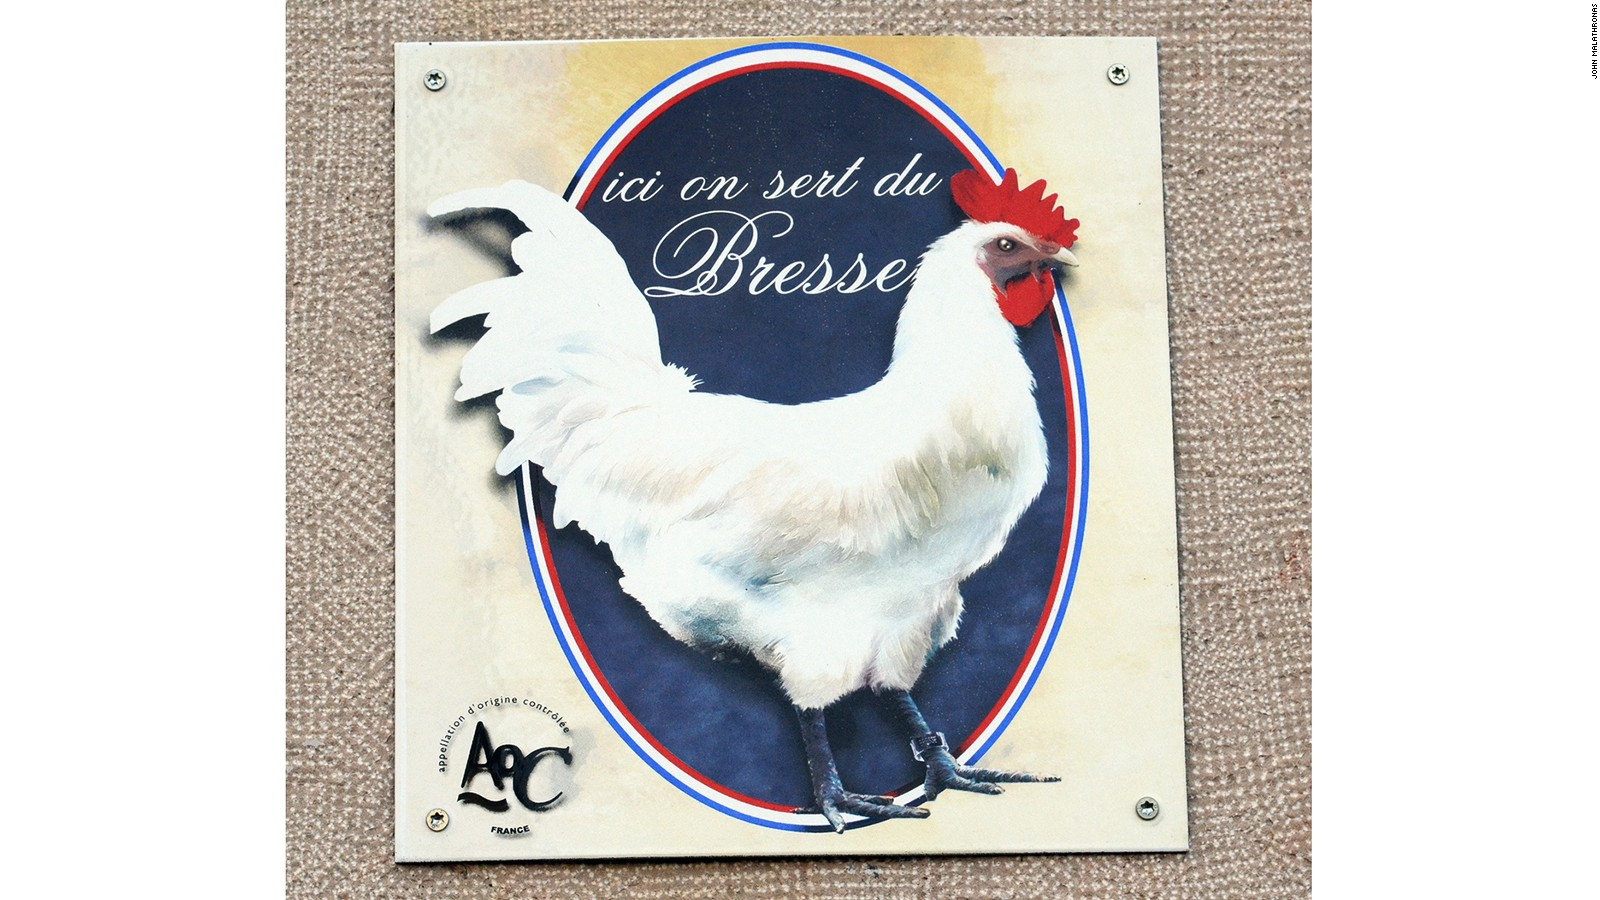 Bresse chicken, found in France, is world's most expensive | CNN Travel